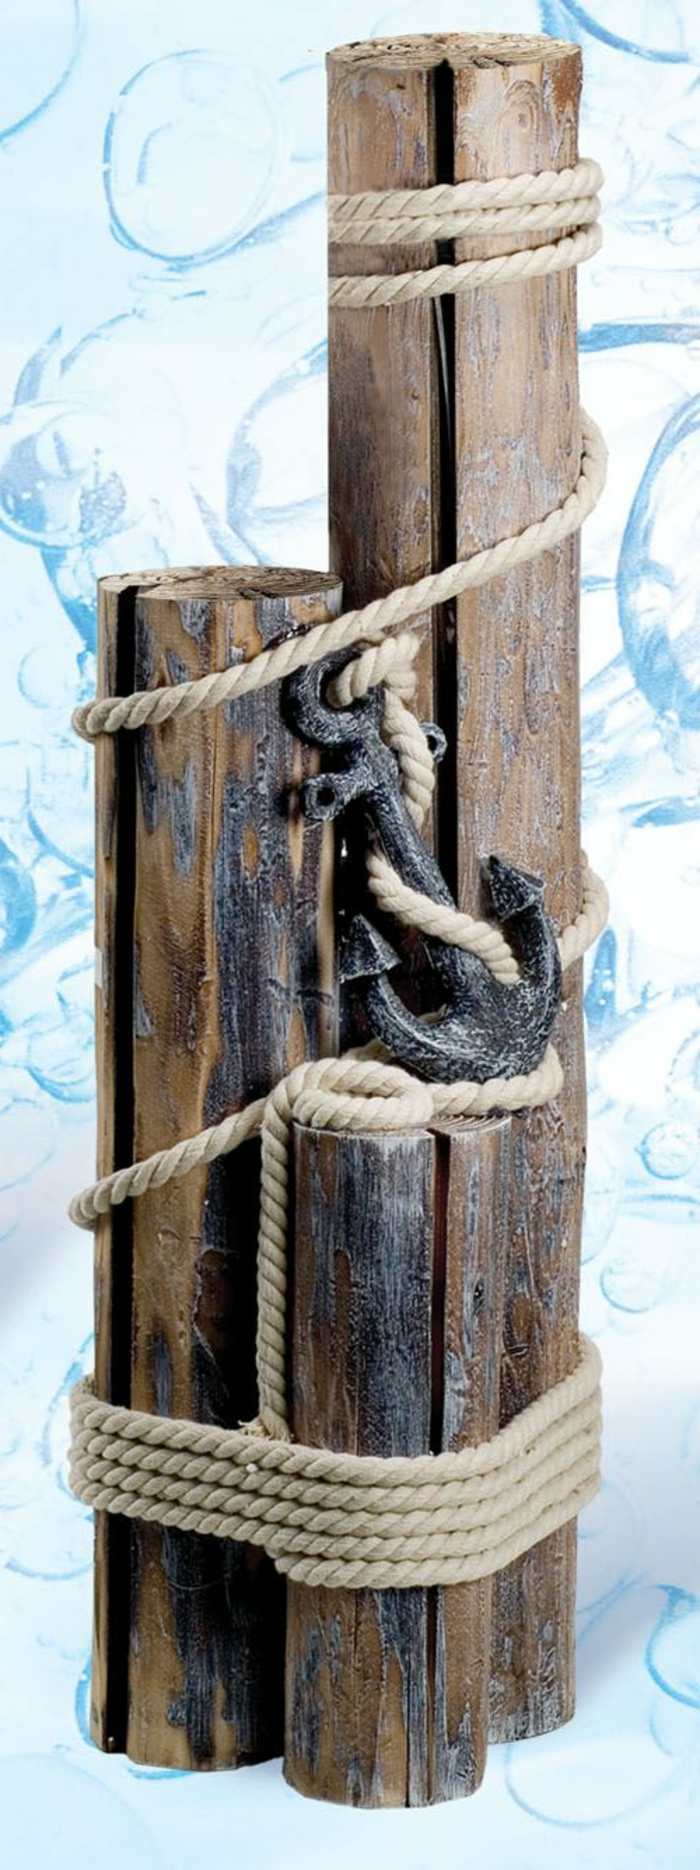 summer crafts, wooden decoration made from three pieces of rough wood, in different sizes, tied together with rope, and featuring a metal anchor element